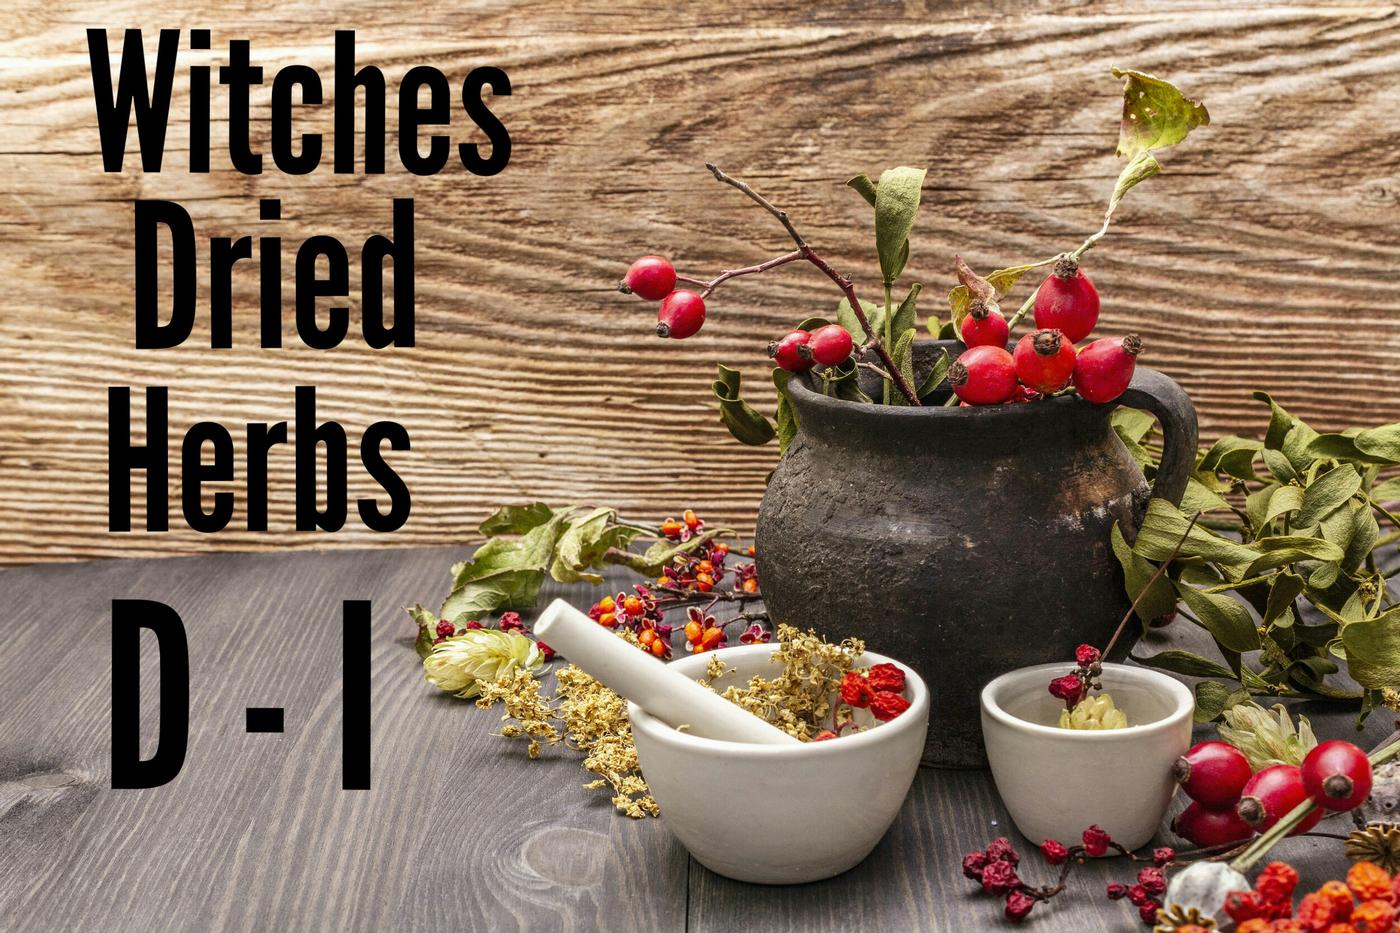 Witches Dried Herbs D - I